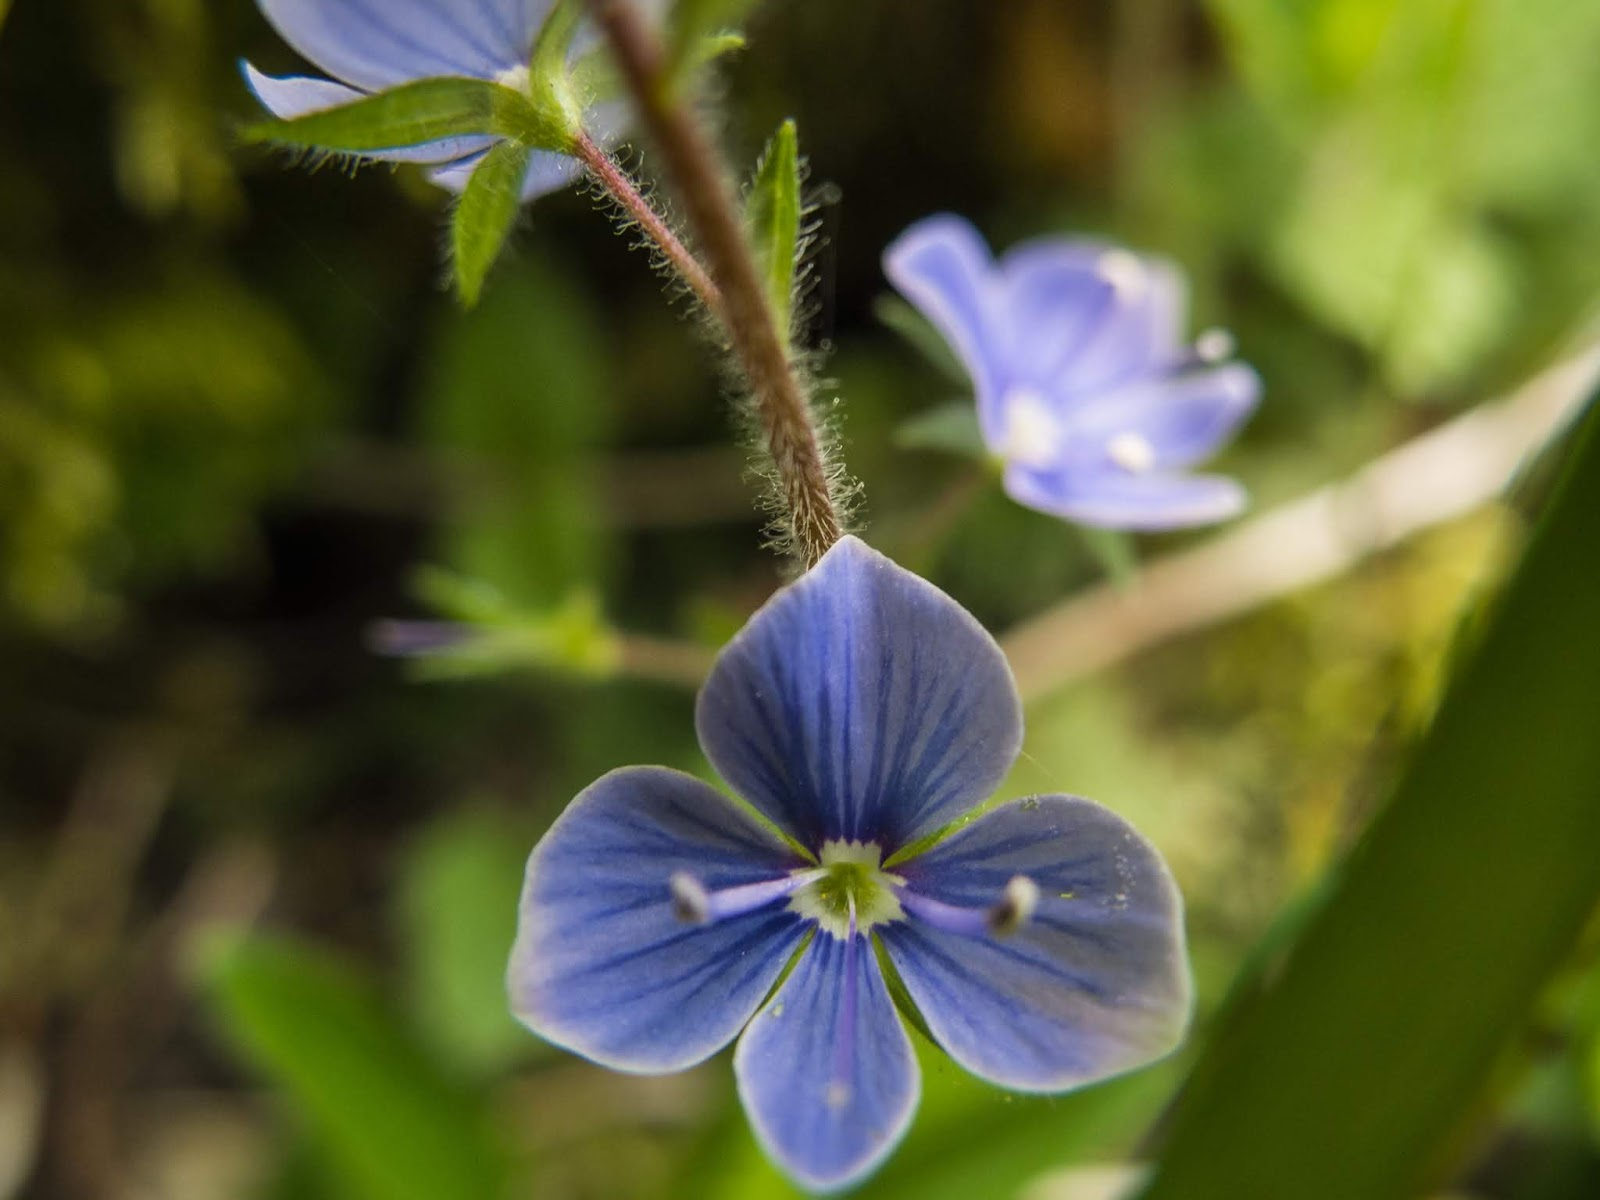 A macro image of a tiny blue Veronica Chamaedrys wildflower.